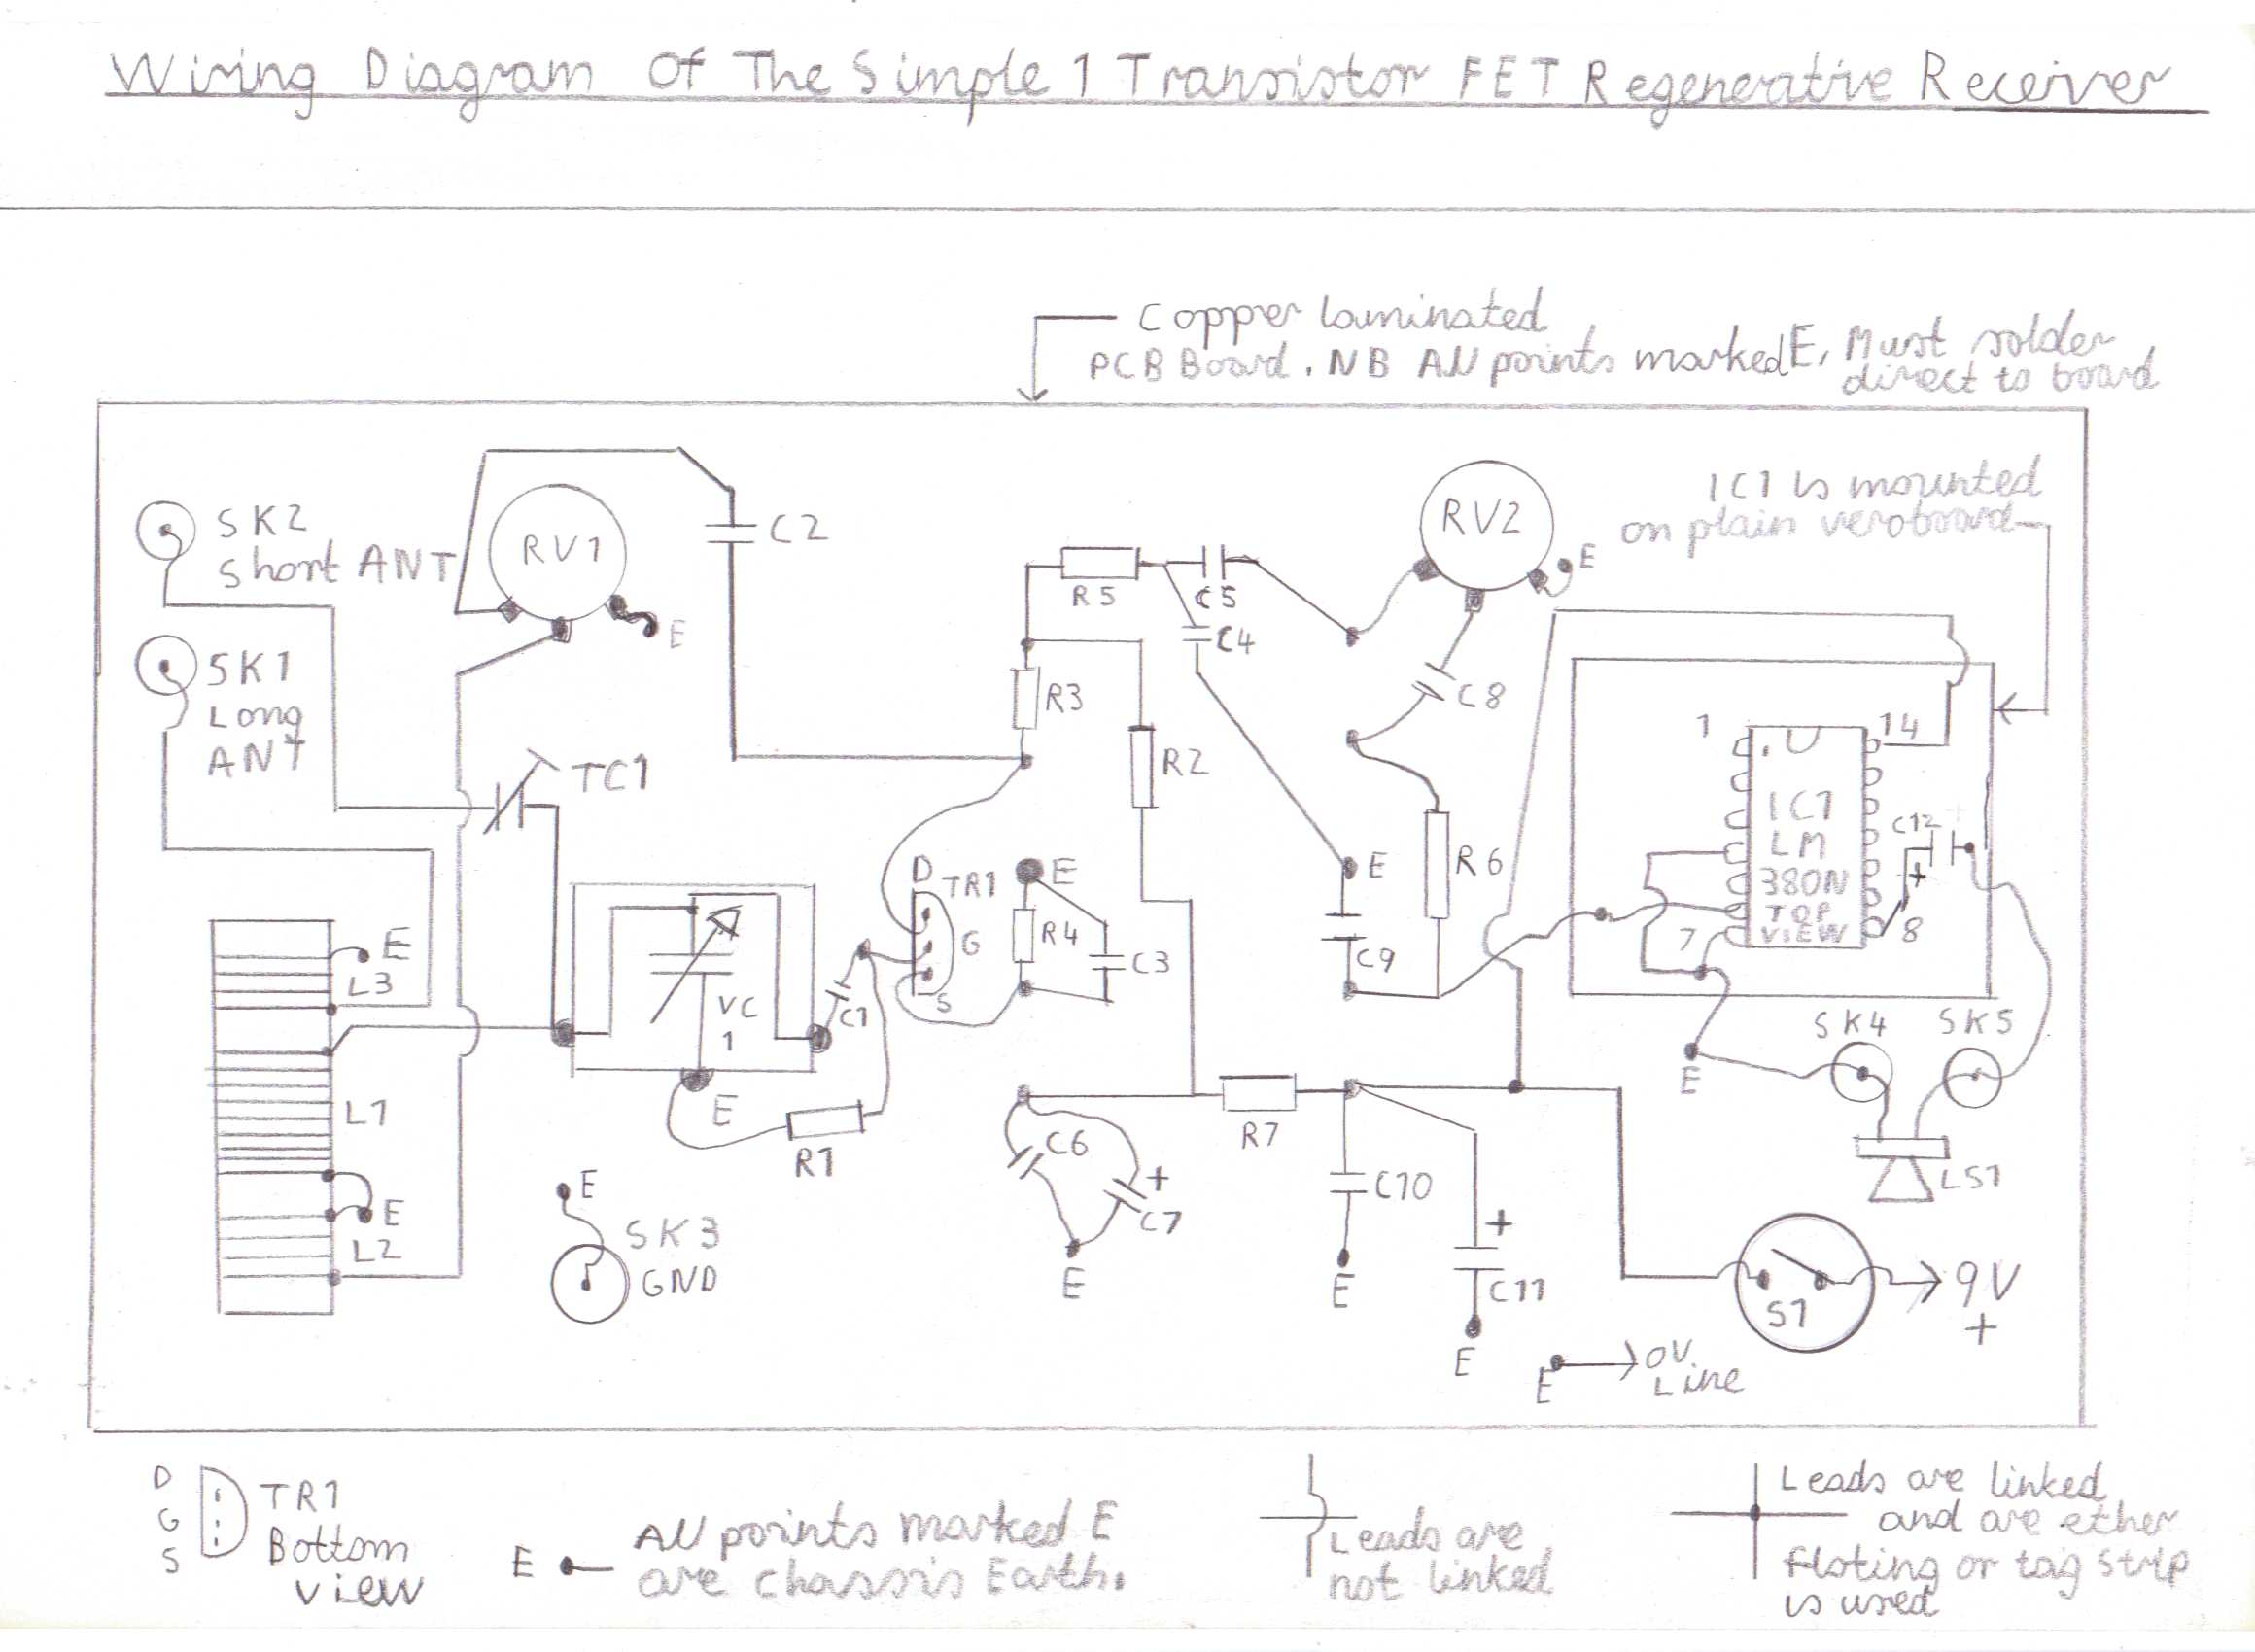 Progressive Crystal Set To Regenerative Receiver Using Safe 12v Ht Line Make This Simple Fm Radio Circuit A Single Electronic Wiring Diagram Of The 1 Transistor Basic Is Wired Copper Cladboard And Tagstrip Similar Valve Circuits